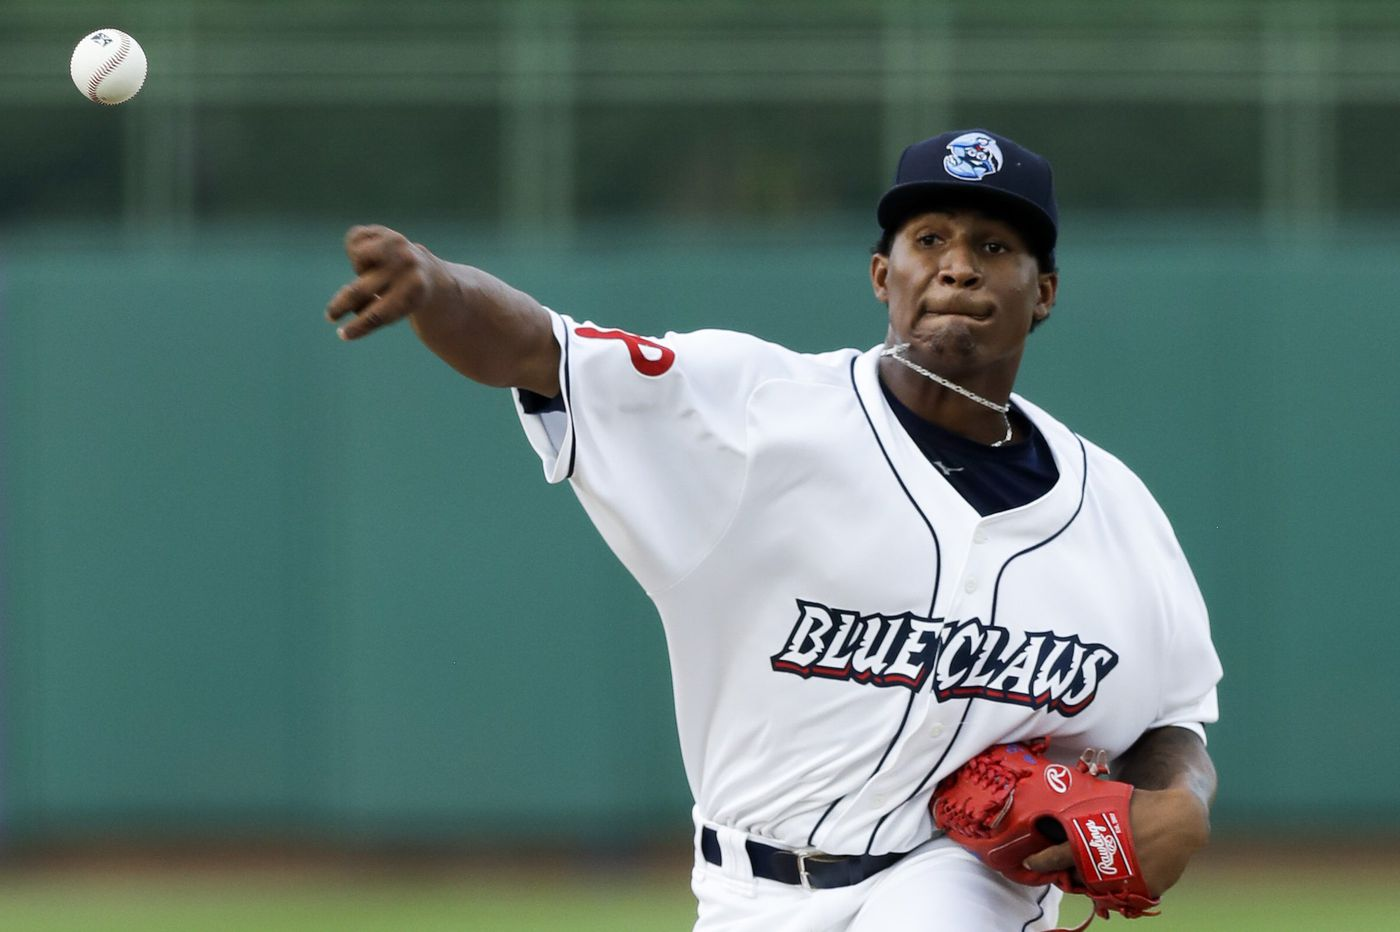 Sixto Sanchez could return to the mound in Arizona Fall League